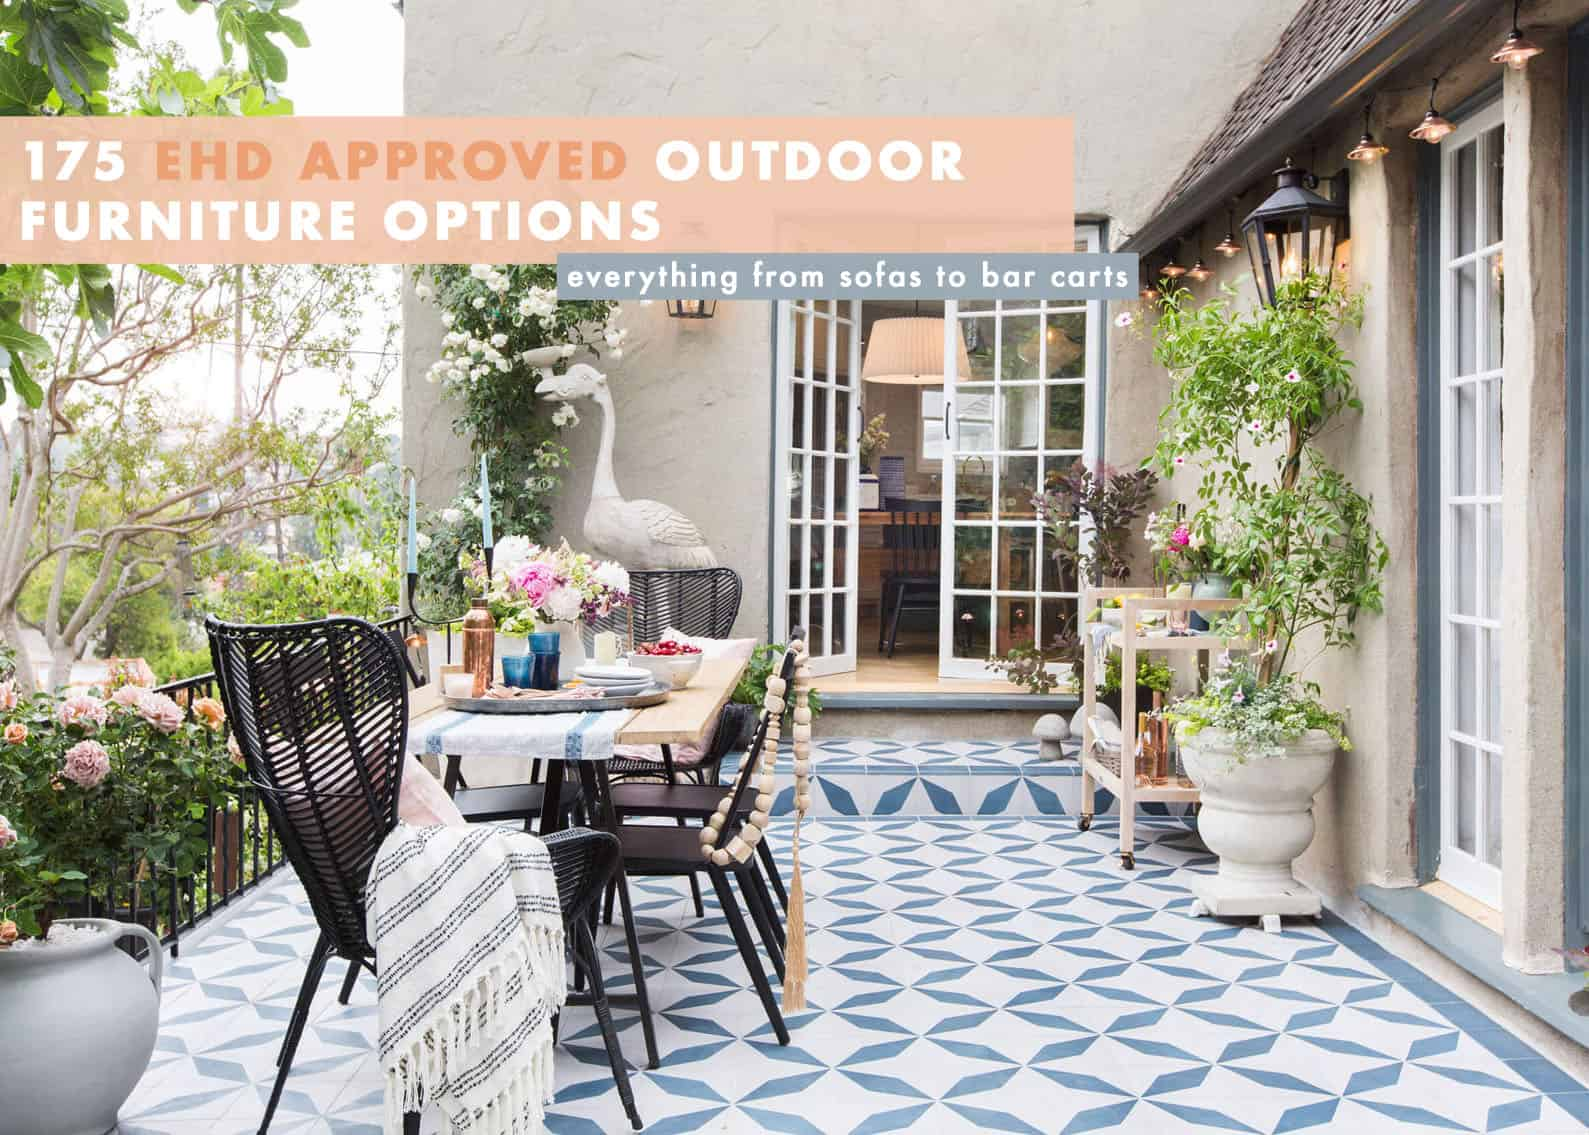 The Complete Ehd Outdoor Furniture Roundup For Every Budget For Any Size Space Emily Henderson